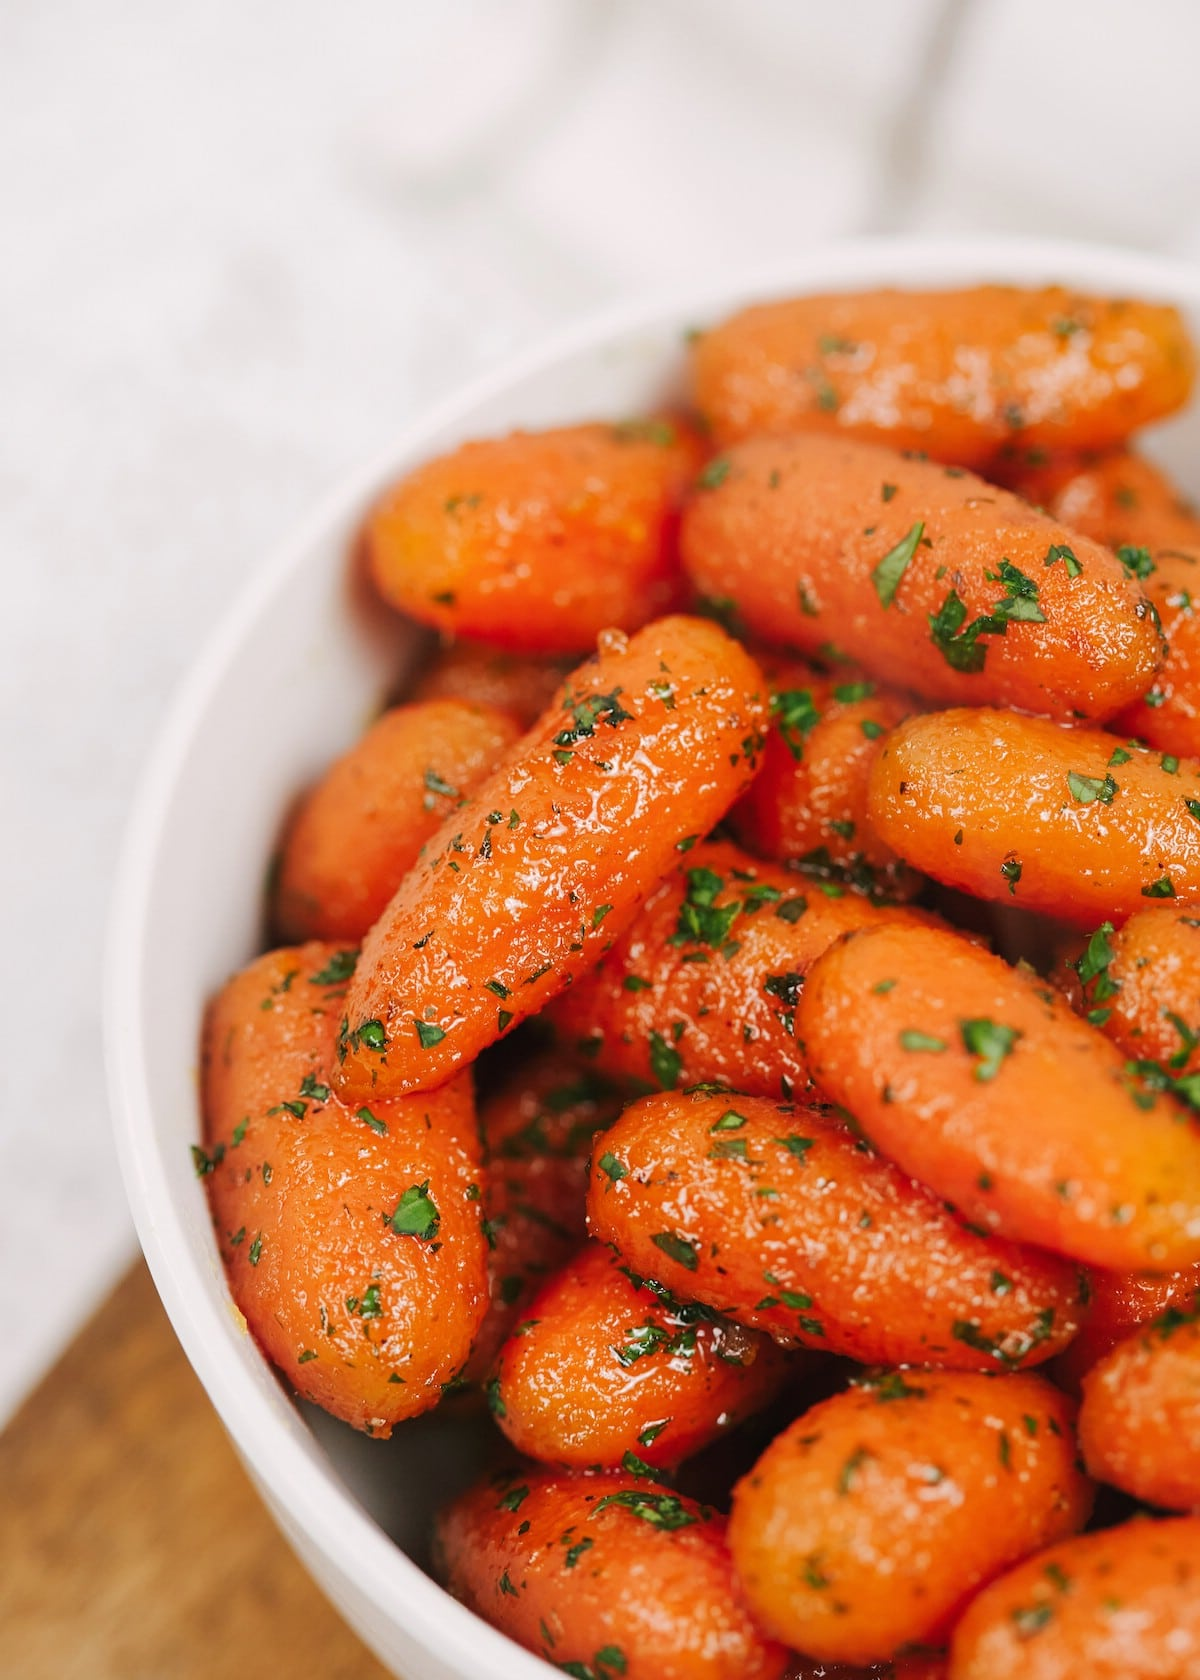 Carrots in white bowl topped with parsley